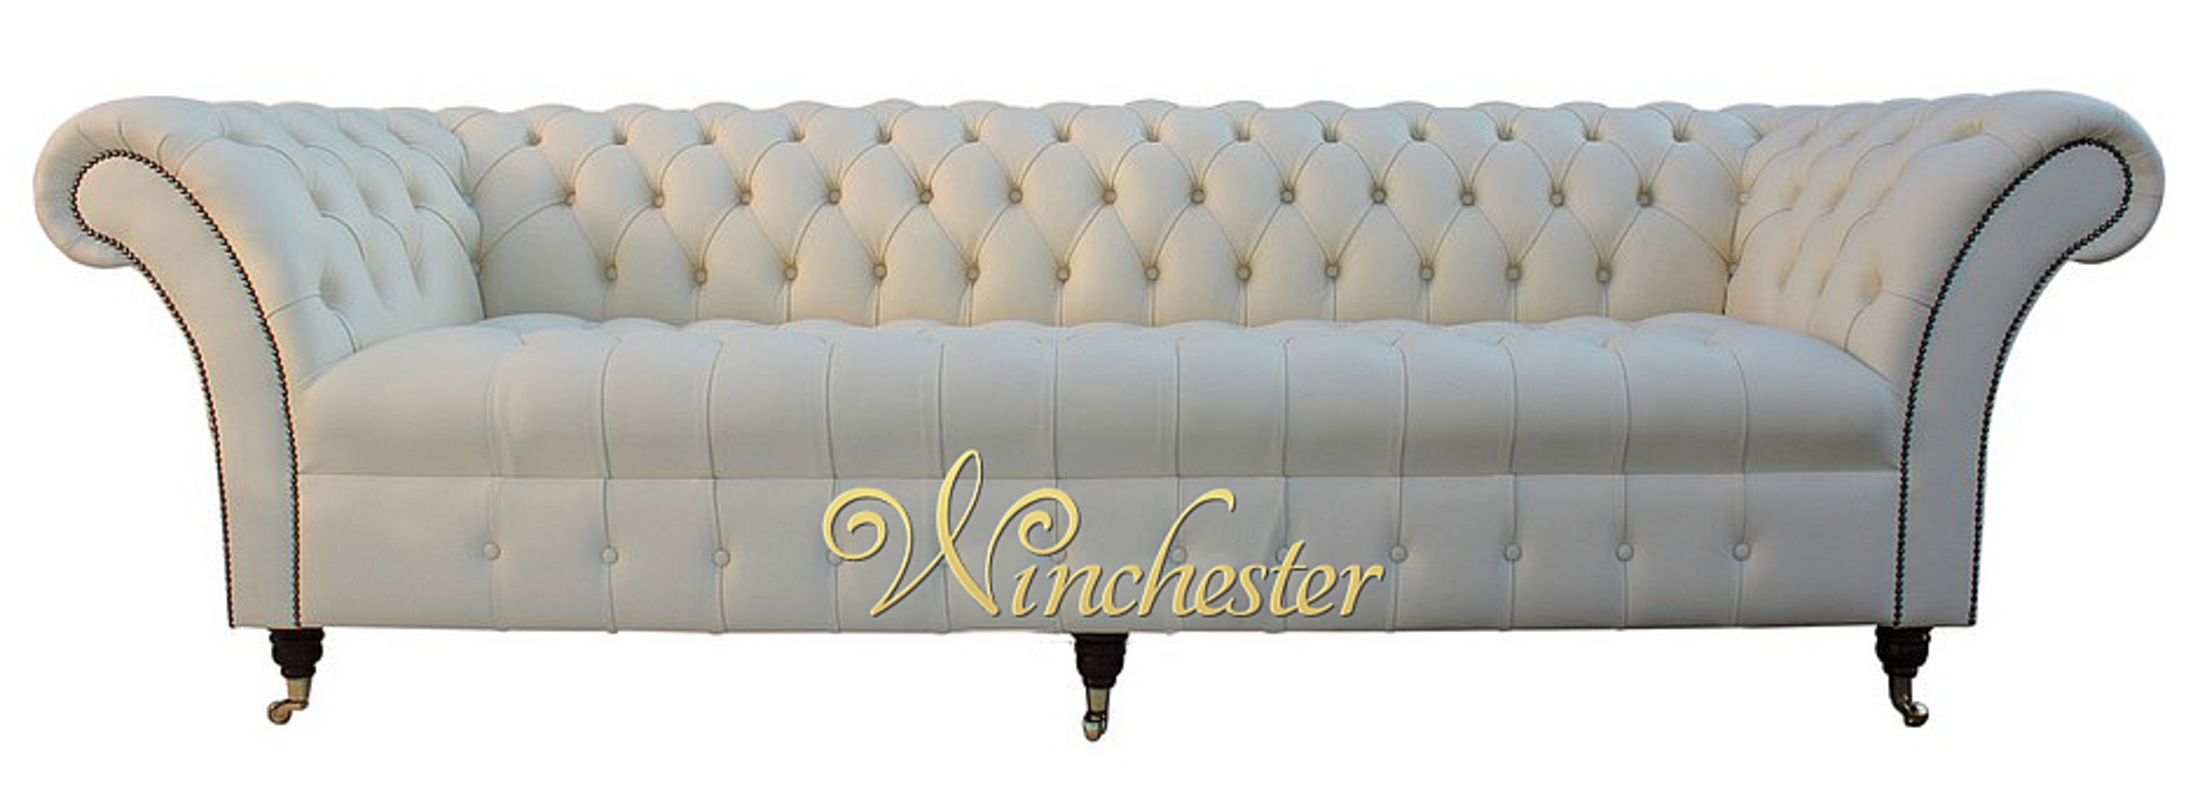 Incroyable Chesterfield Blenheim 4 Seater Sofa Buttoned Seat Settee Cream Leather Wc